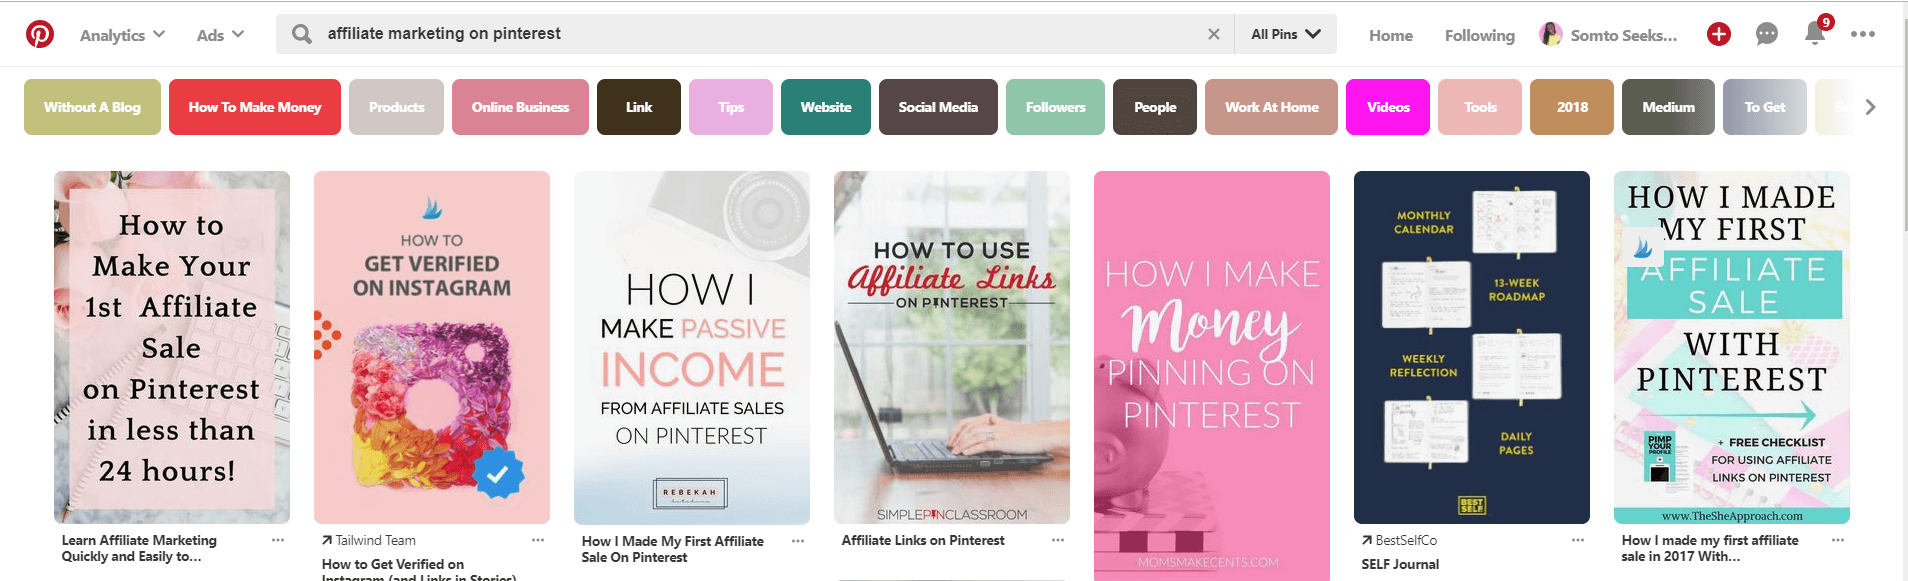 How to make money on Pinterest with affiliate marketing - Pinterest keyword